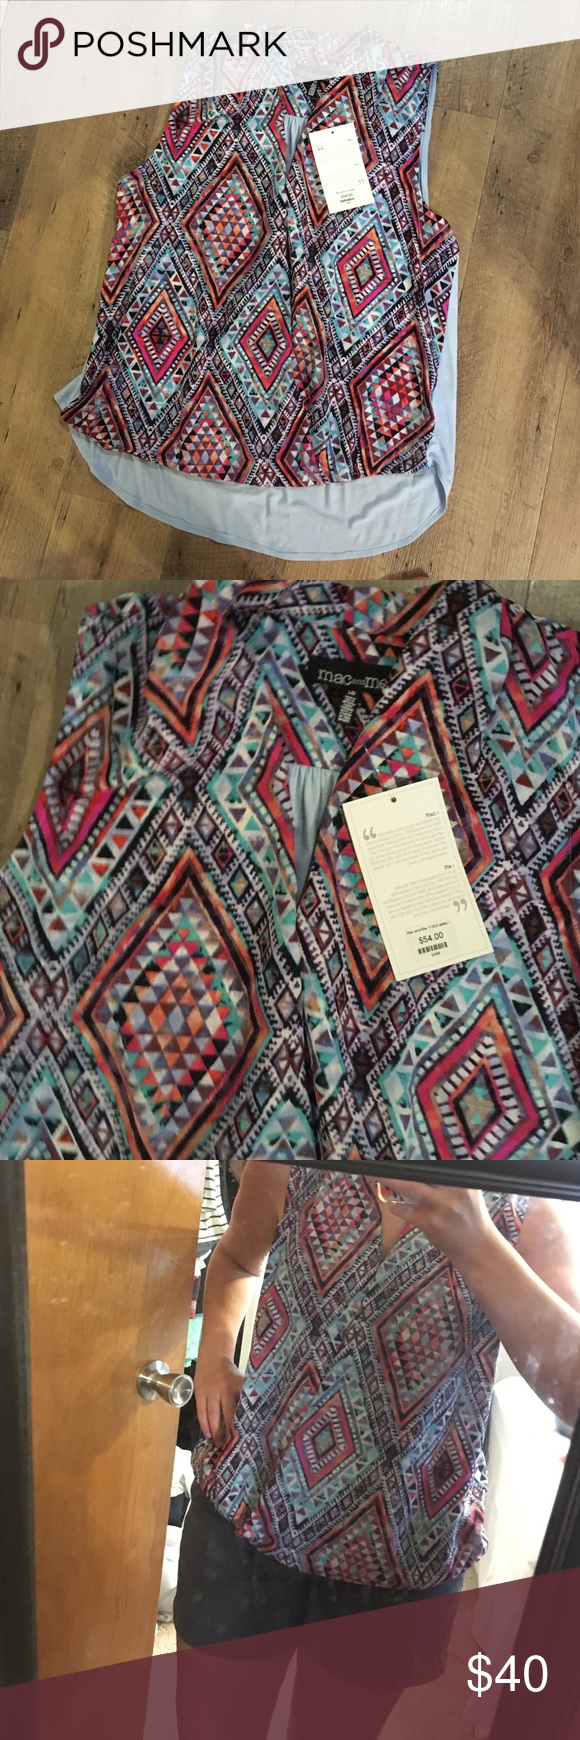 BNWT sassy tank Mac and Me size L Chiffon Aztec and geometric print front with high low back that is a baby blue shirt material. Faux crossover wrap draped front. New with tags, never got around to wearing. It's a size large from Mainstream Boutique. Francesca's Collections Tops Tank Tops